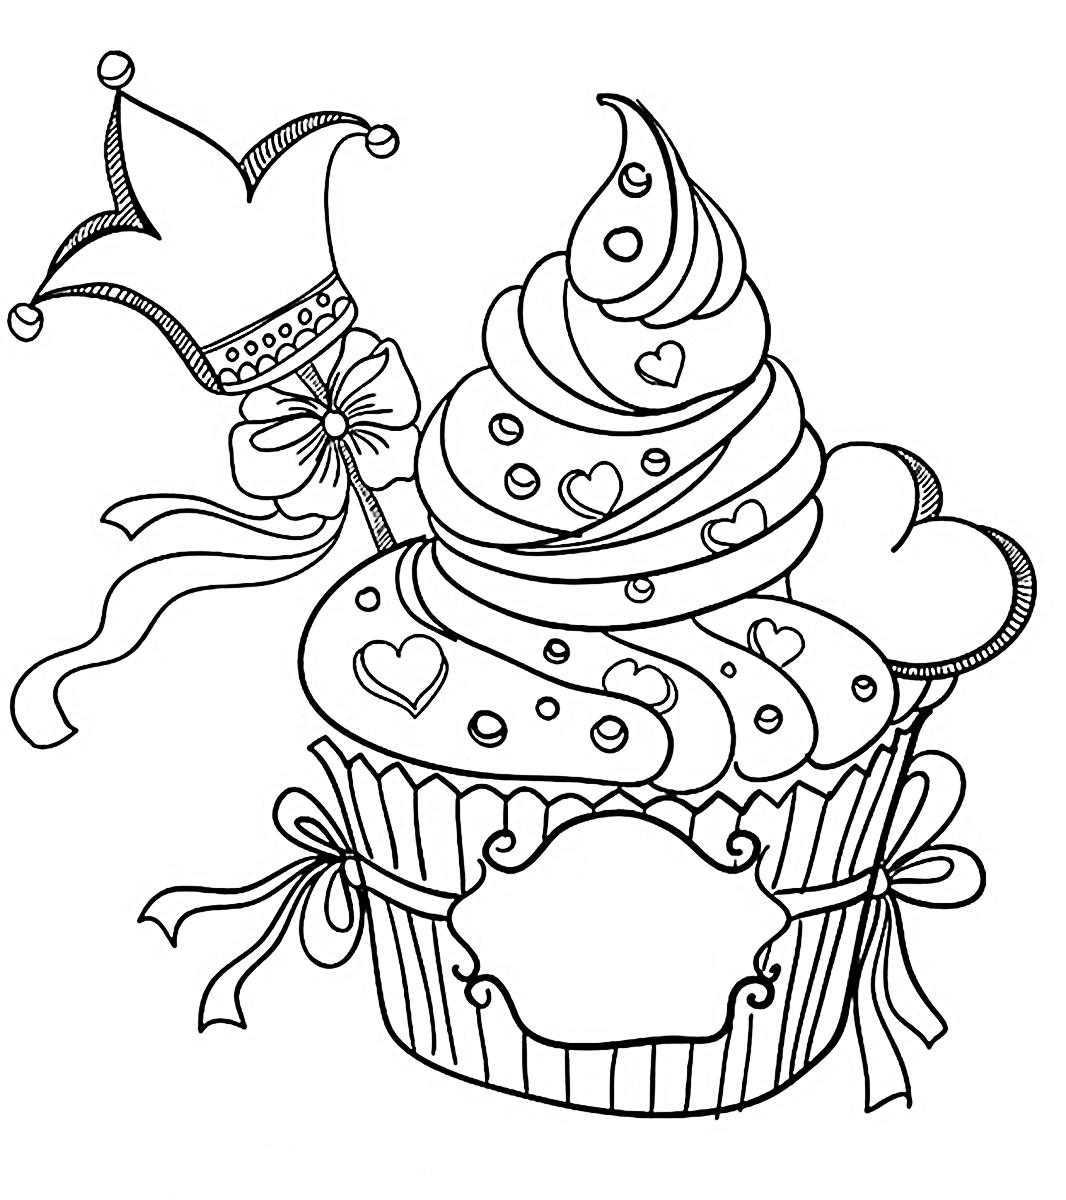 riscos graciosos  cute drawings   cupcakes  sorvetes e bolos  cupcakes  ice creams and cakes